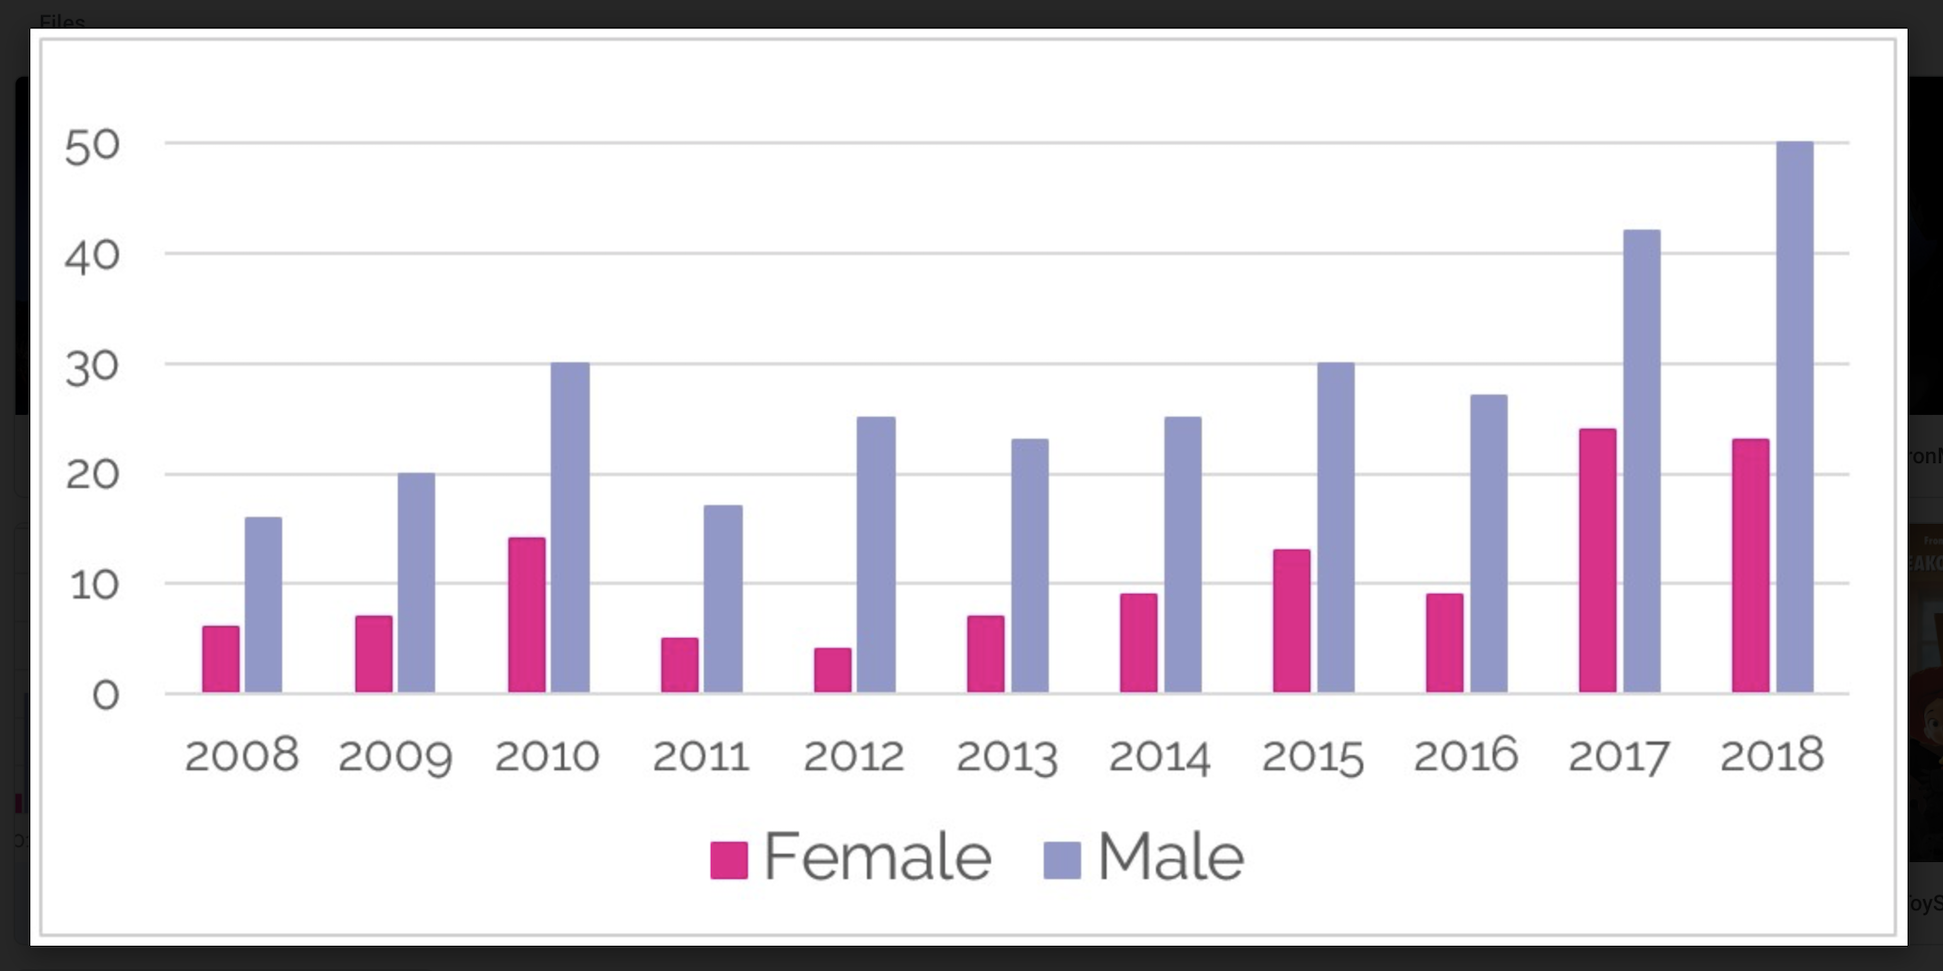 Visuals and gender discrepancy data courtesy of  Kegel8 .